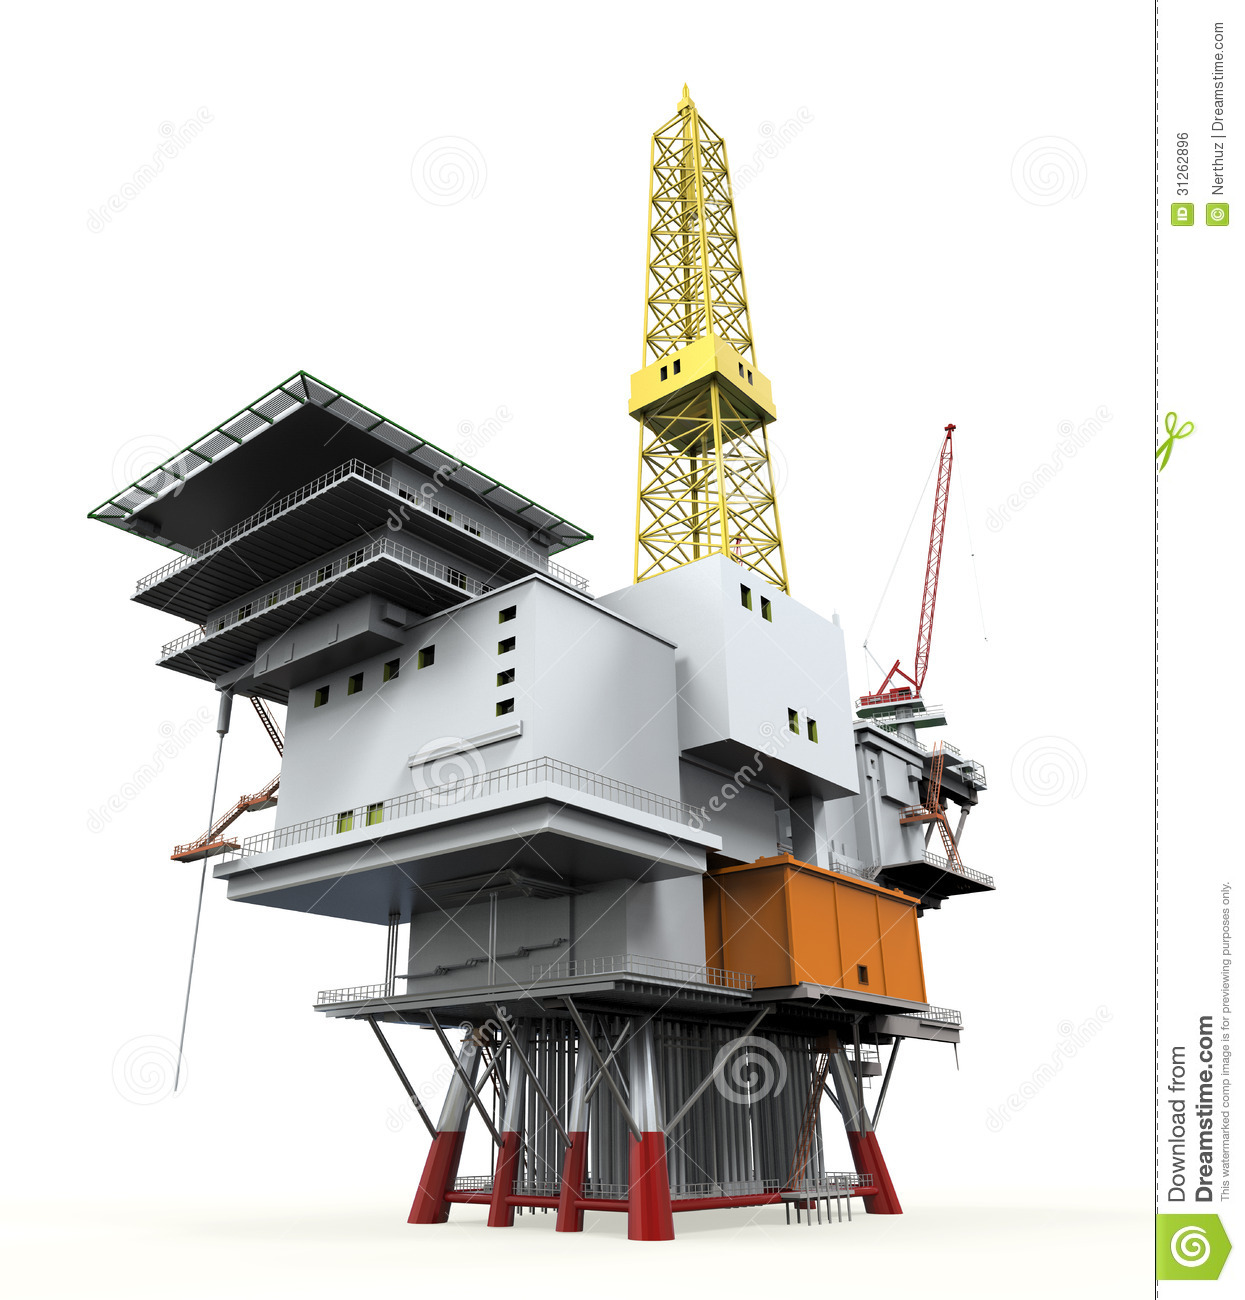 Drilling Offshore Platform Oil Rig Royalty Free Stock Image - Image ...